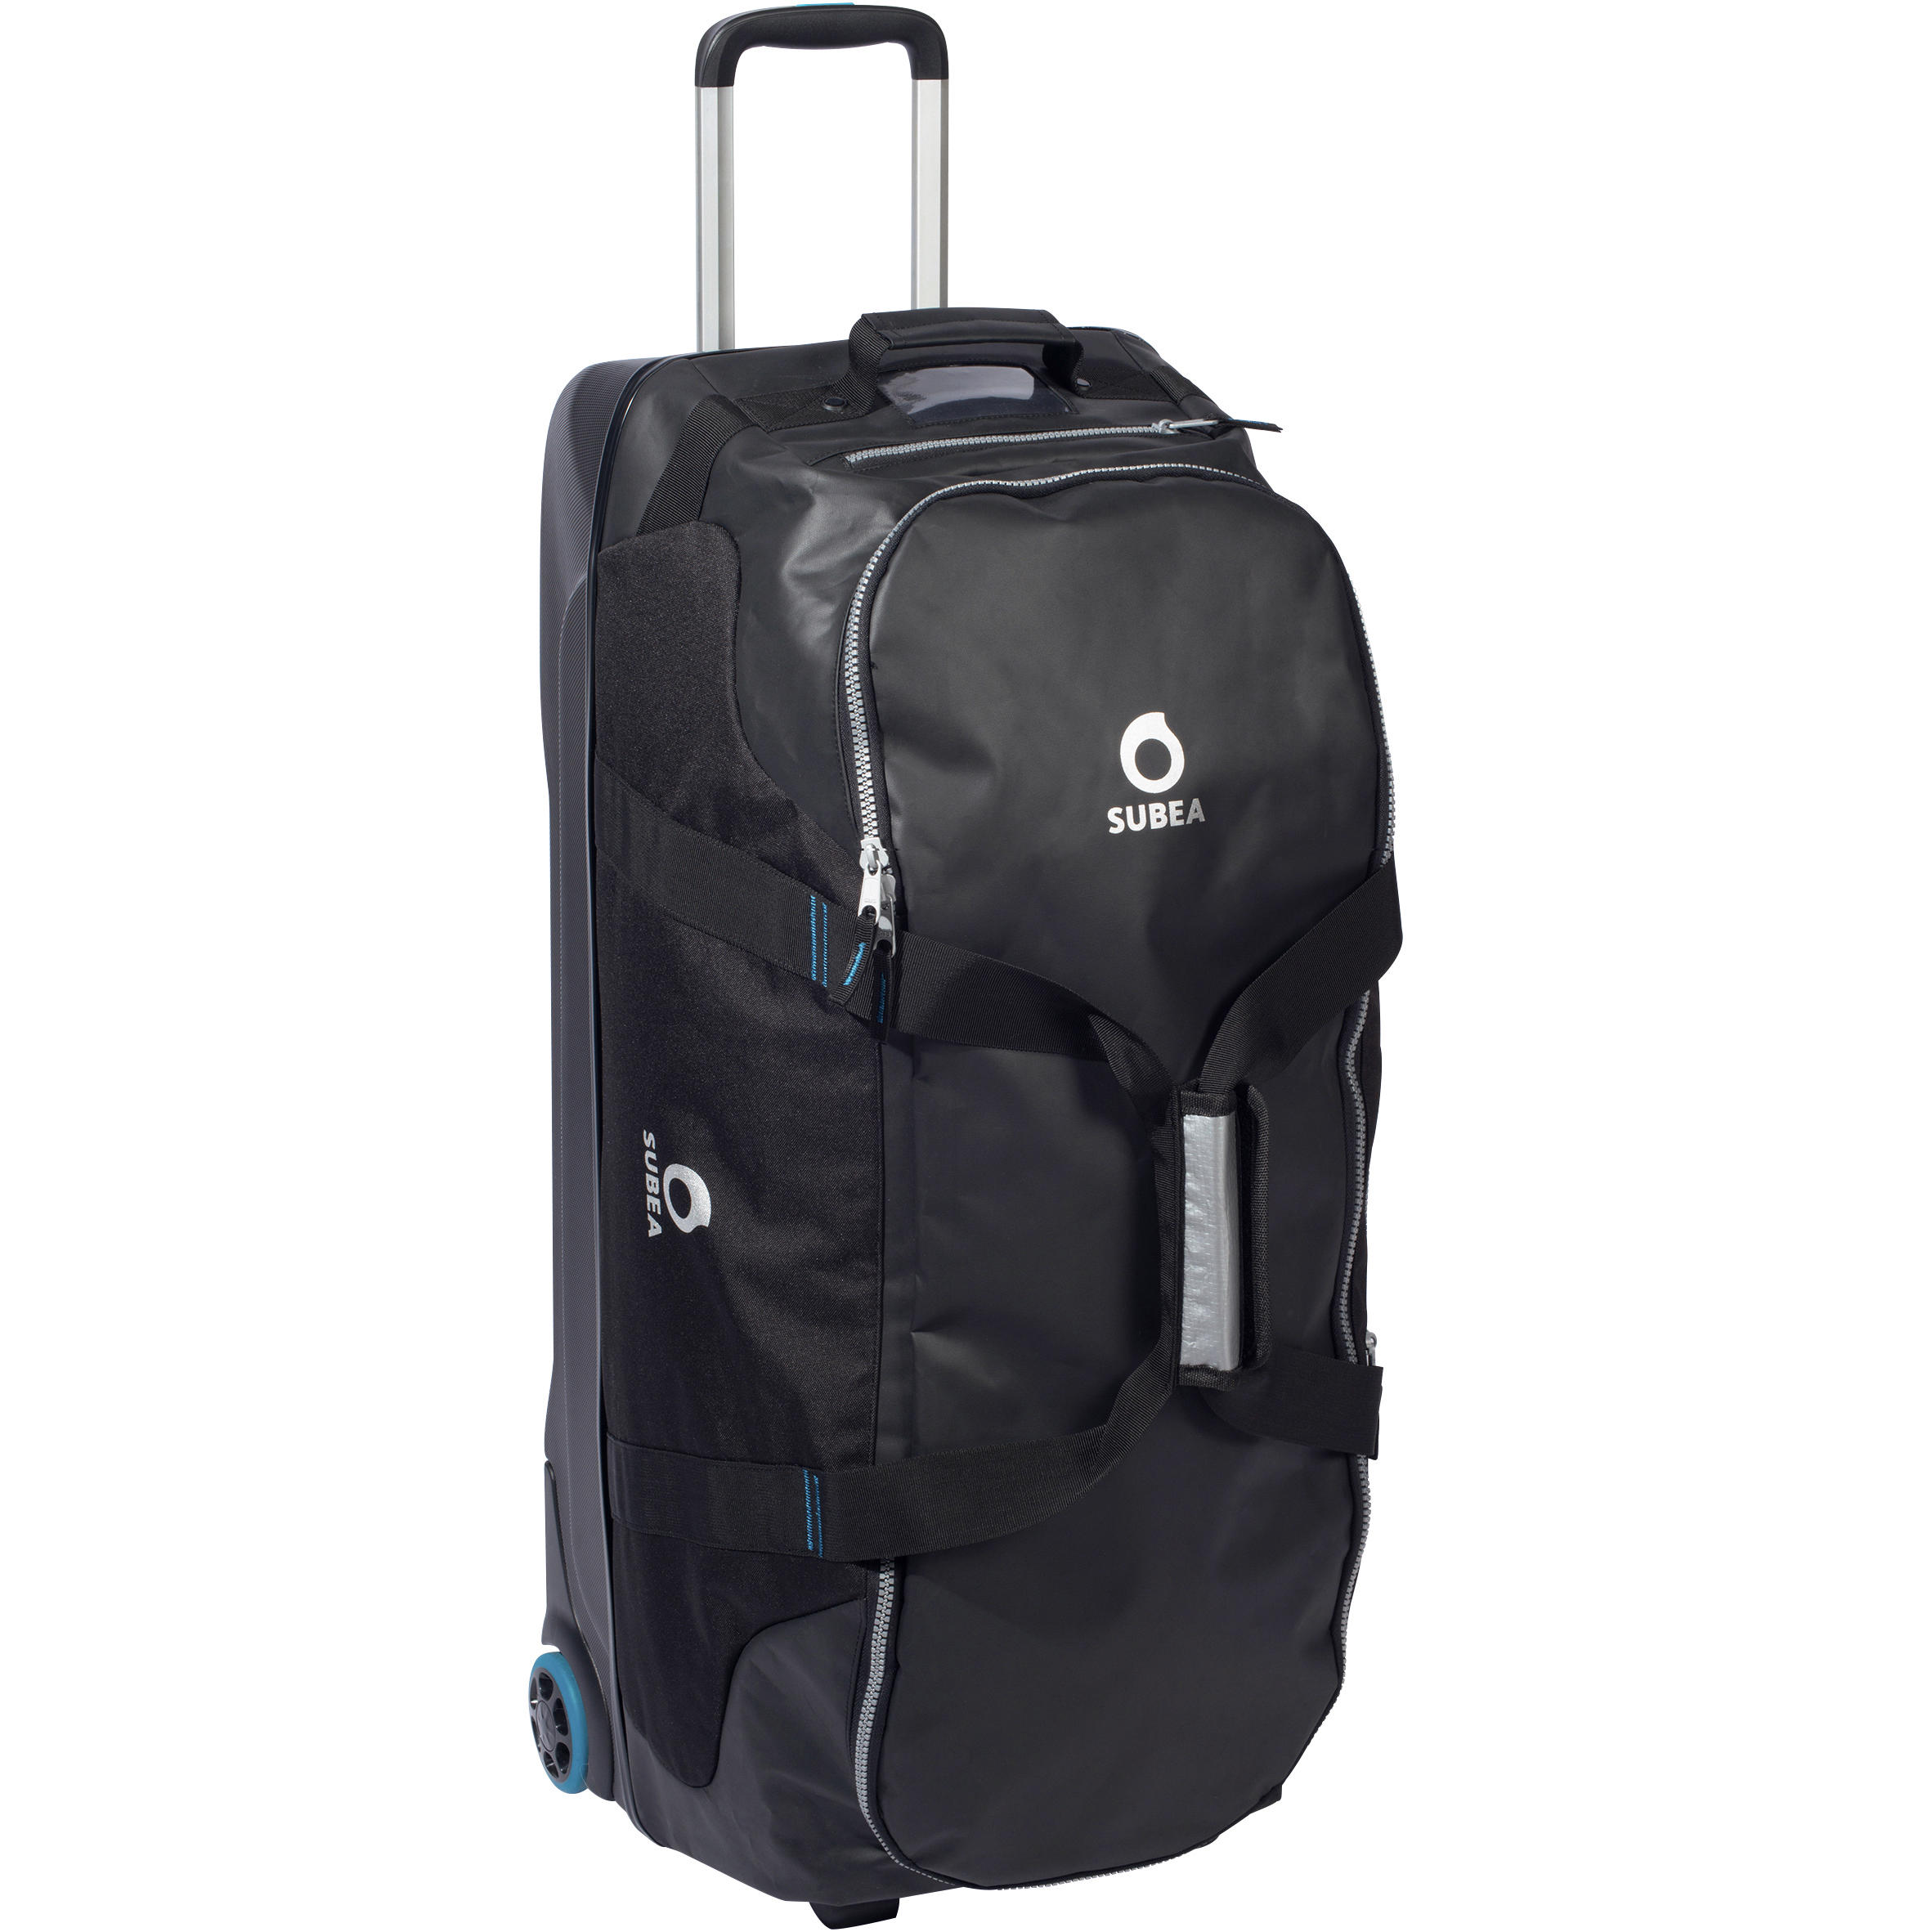 grossiste 60a85 3fab8 Sacs à dos de voyage, backpack | Decathlon